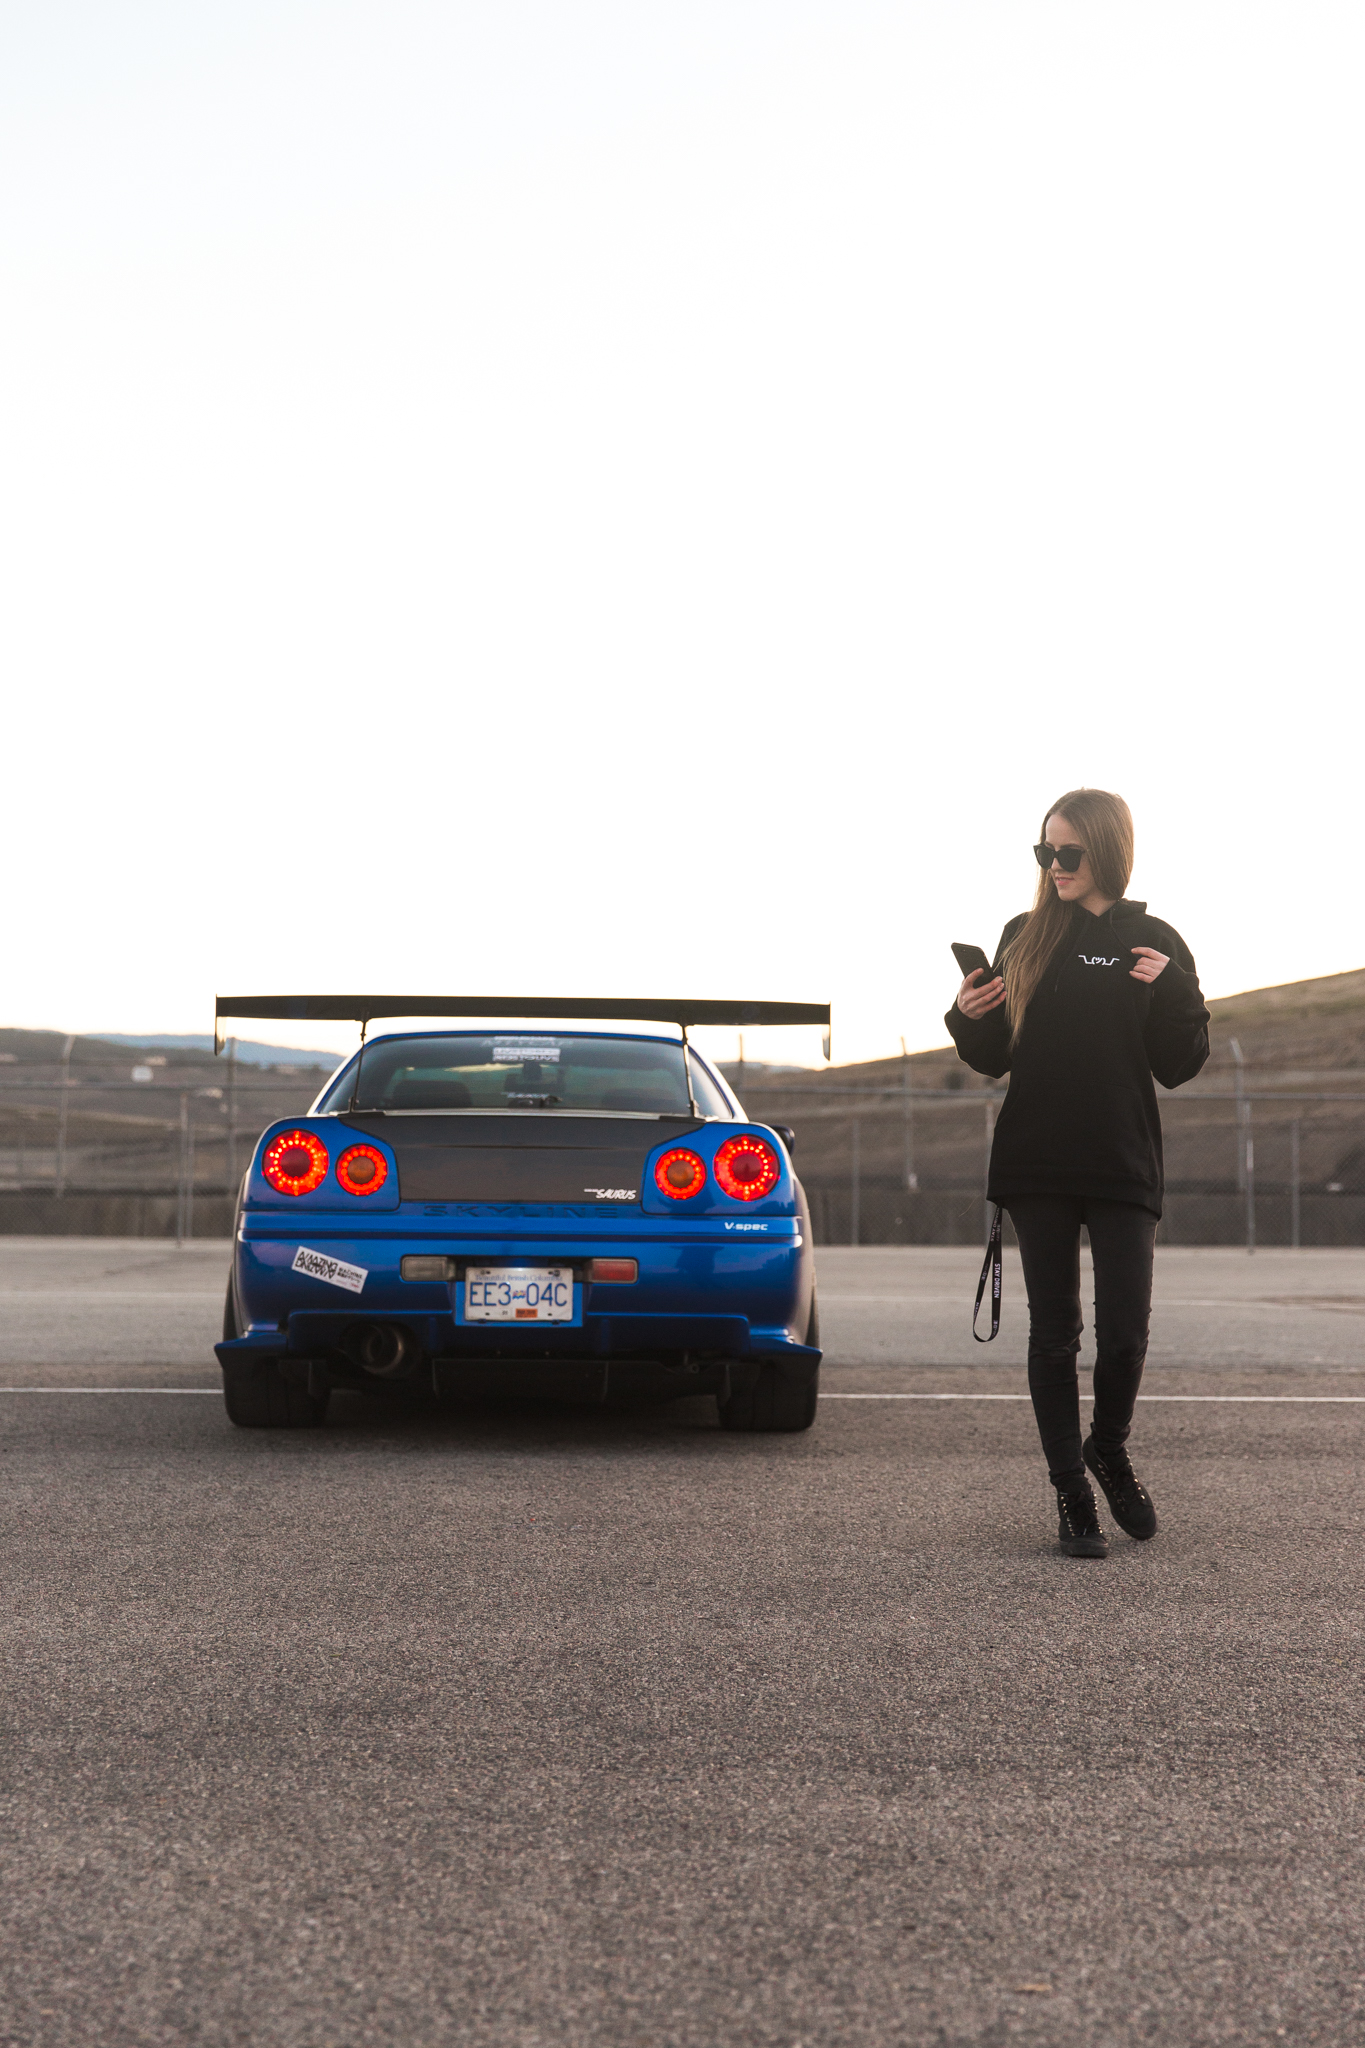 Stay_Driven_Rs_Day-147.jpg